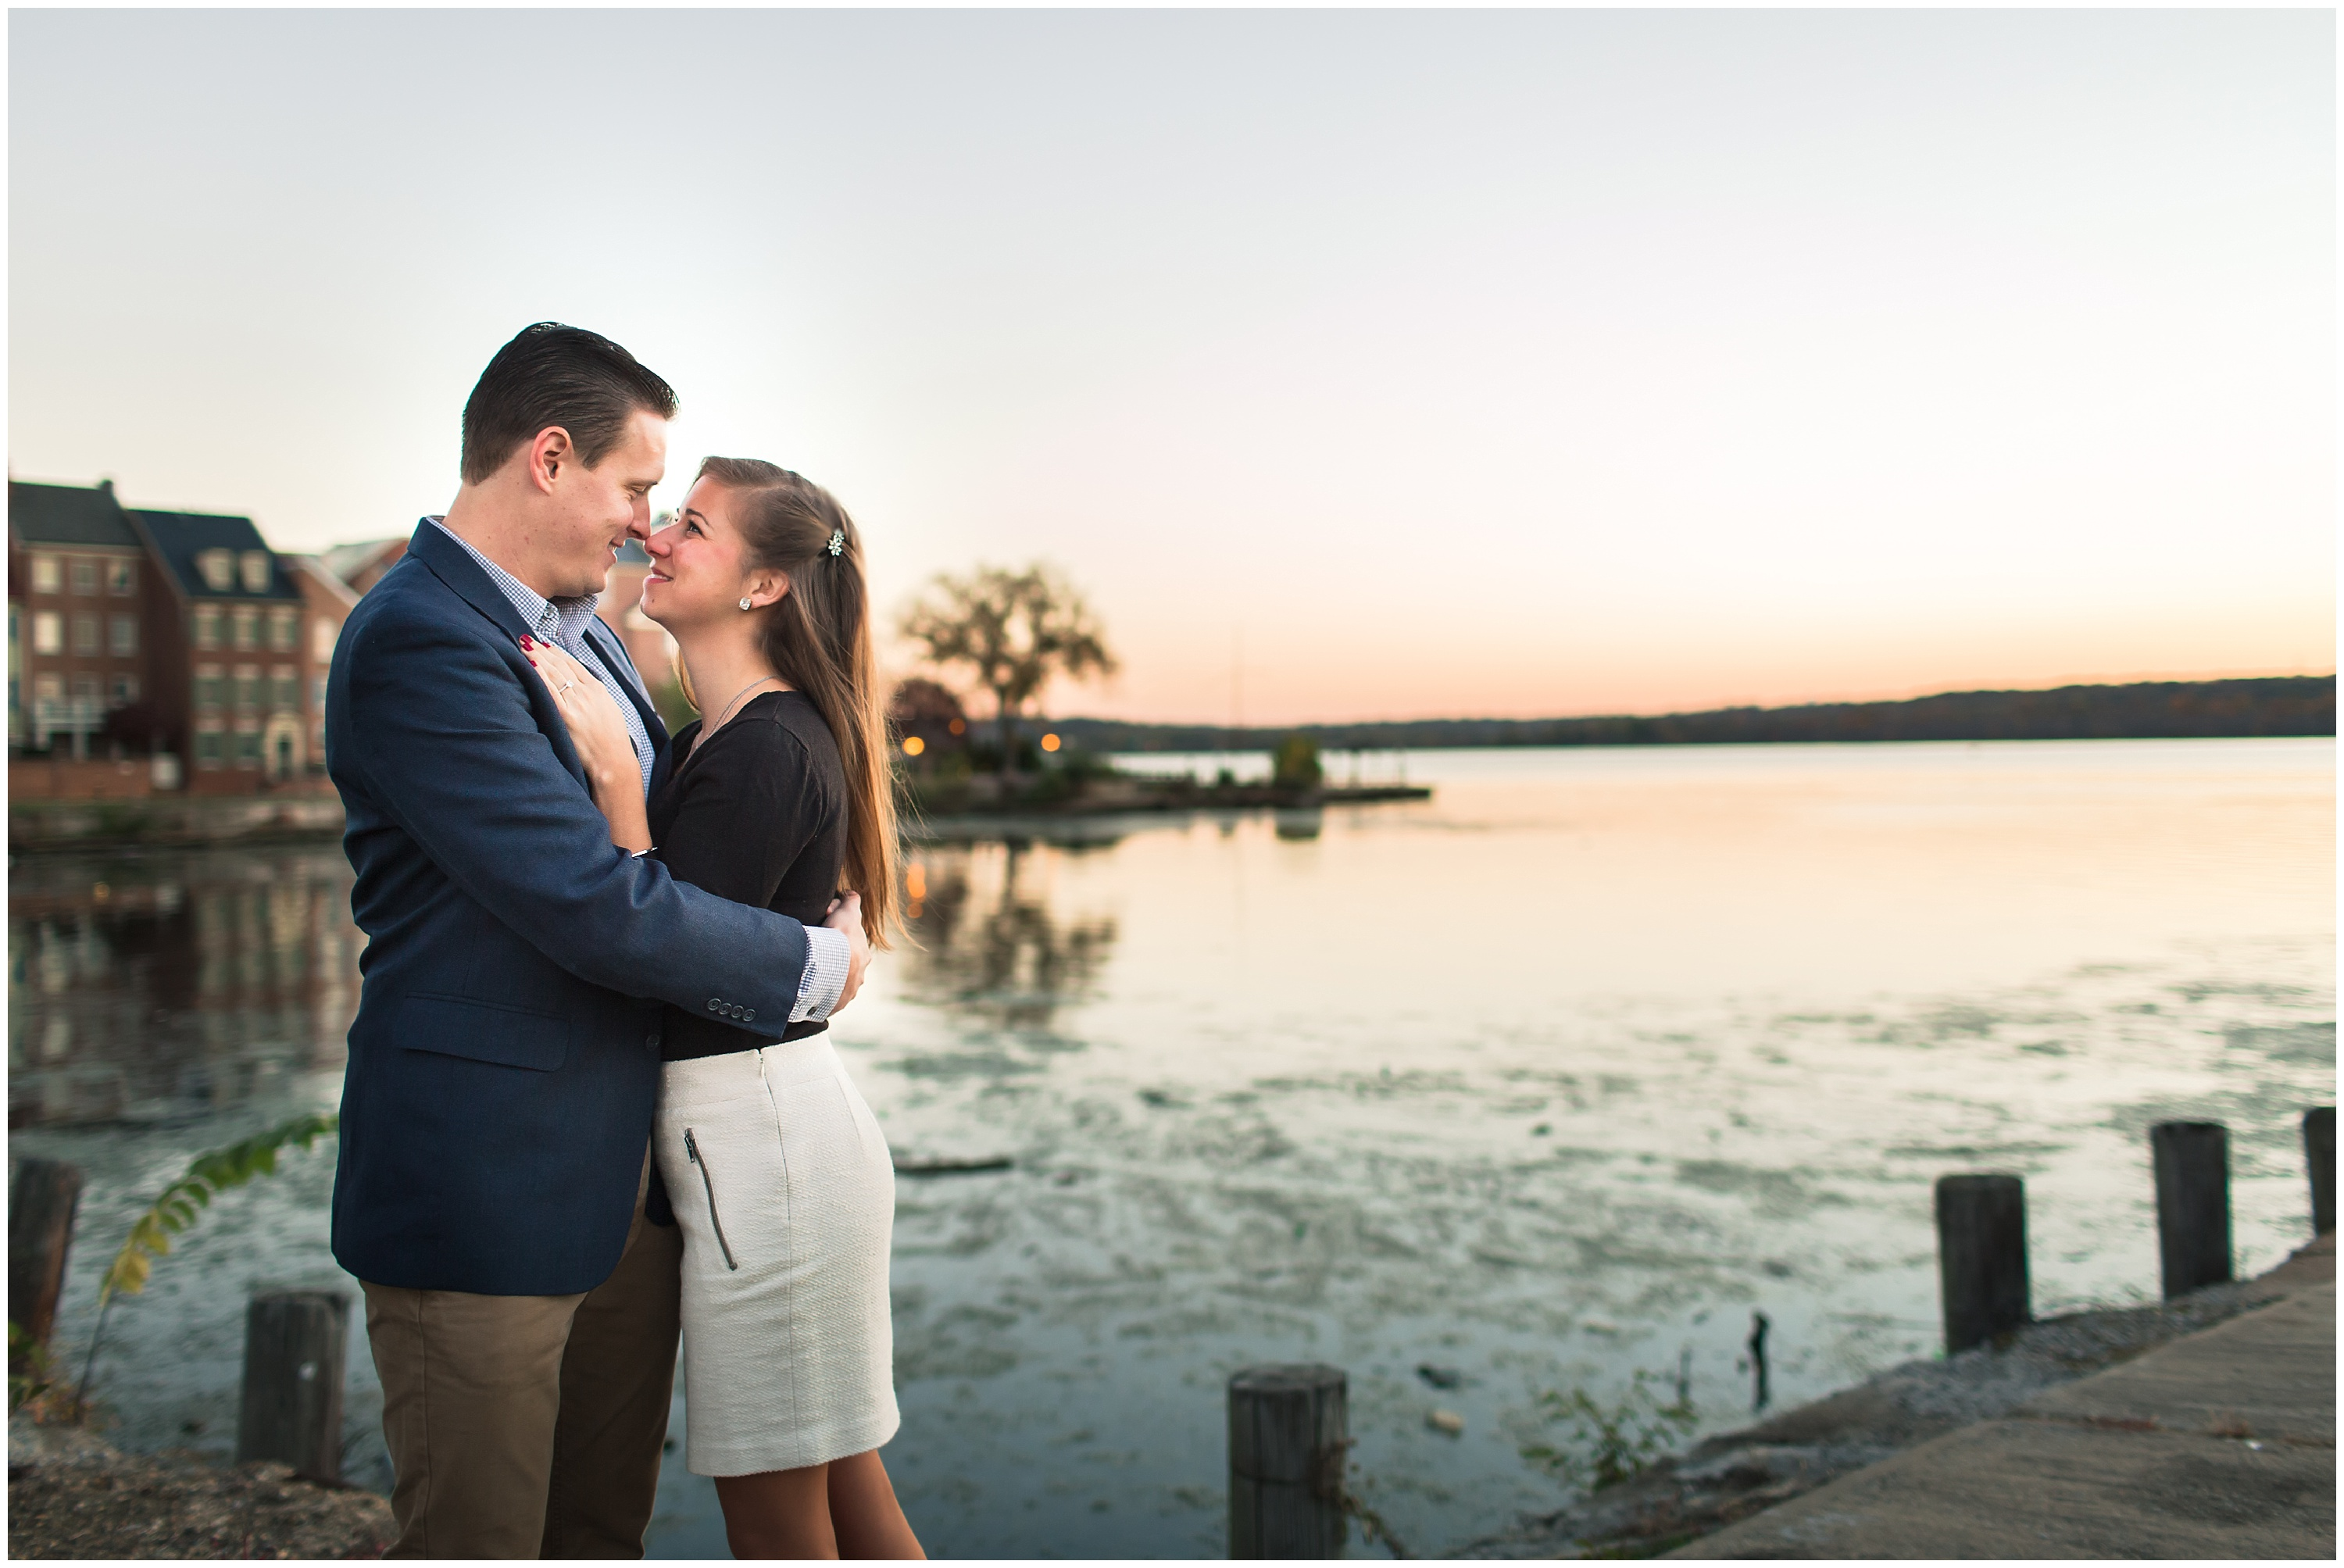 Sofia-John-Waterfront-Alexandria-Wilkes-Tunnel-DC-Engagement00007